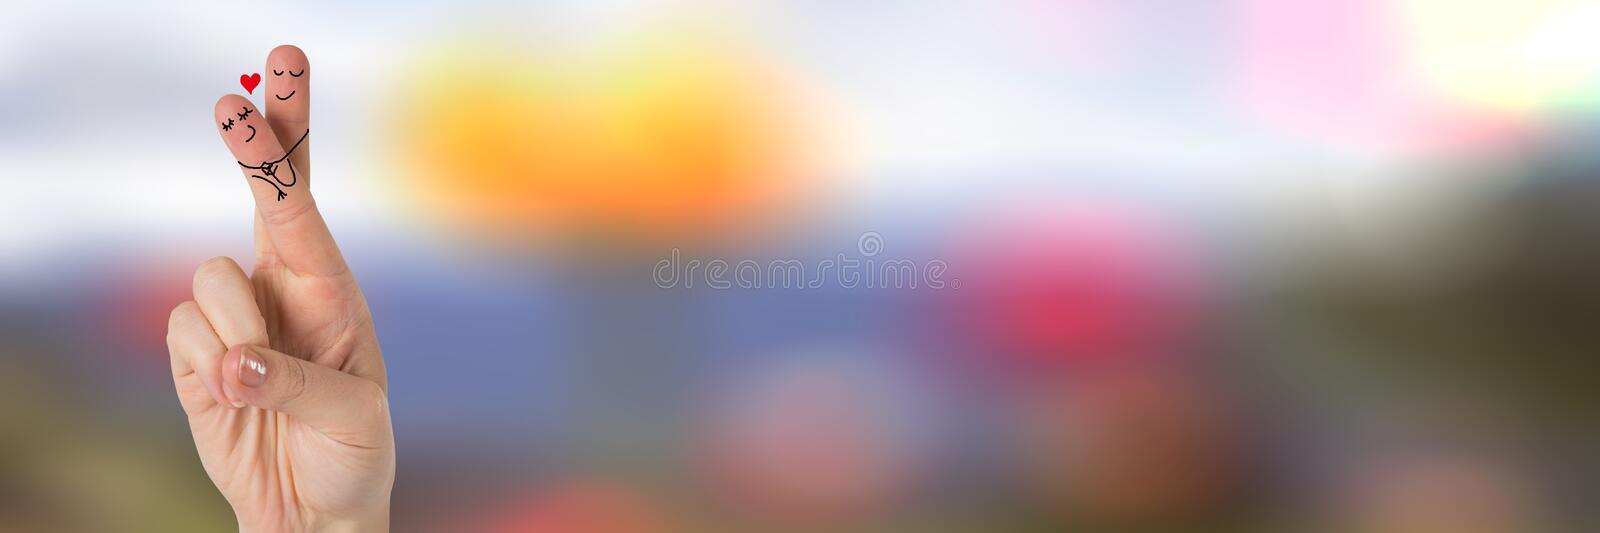 Valentine's fingers love couple and colorful blurred background vector illustration